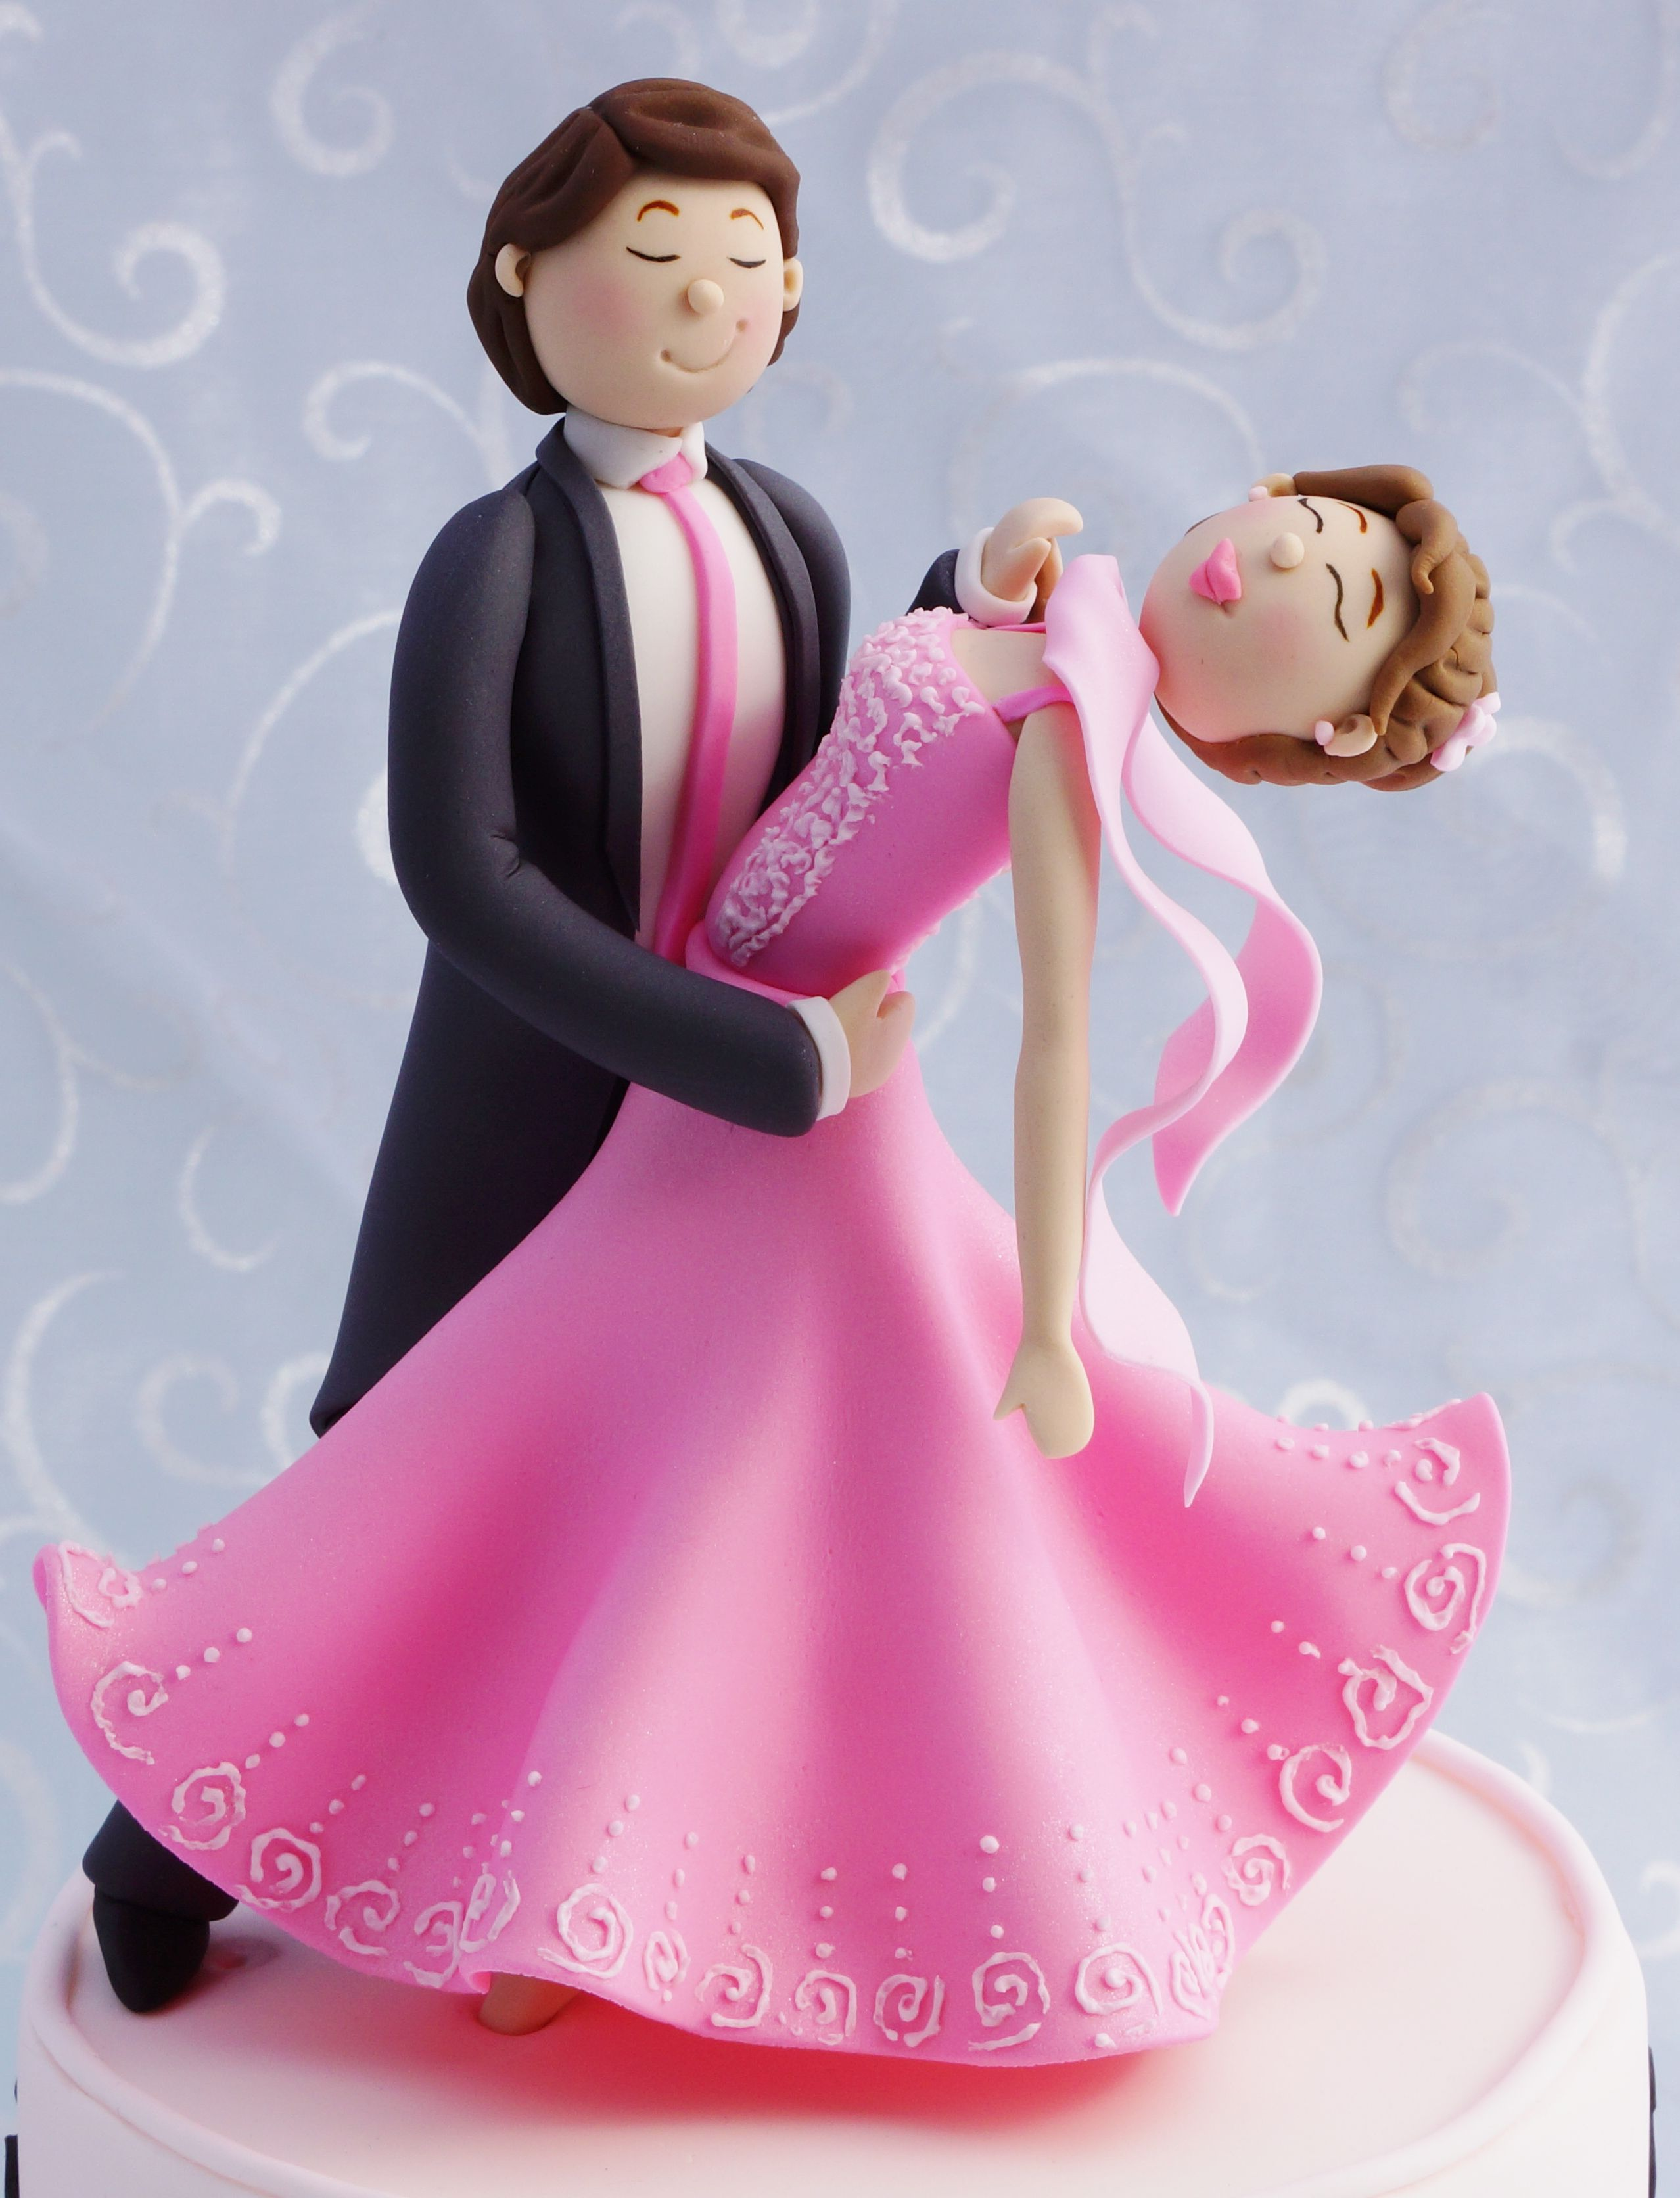 Fondant ballroom dancers 100% edible by Kelly\'s Cake Toppers ...